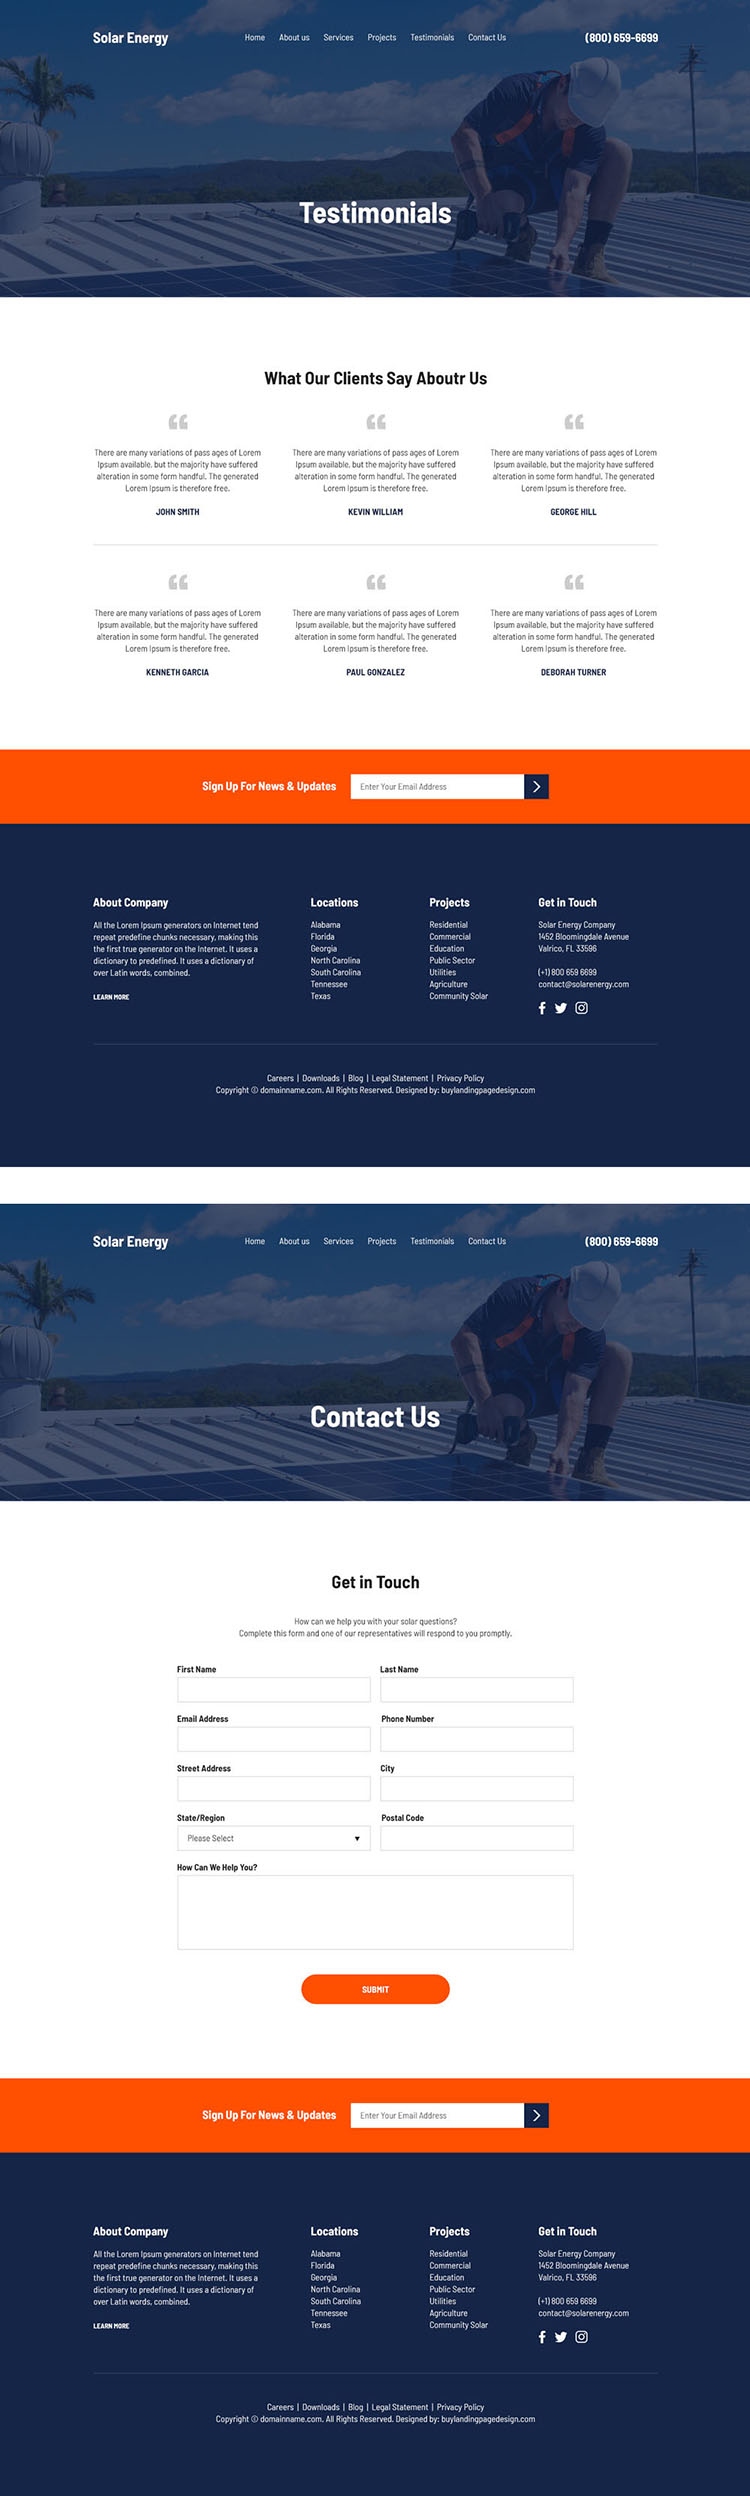 solar energy solutions free quote lead capturing website design